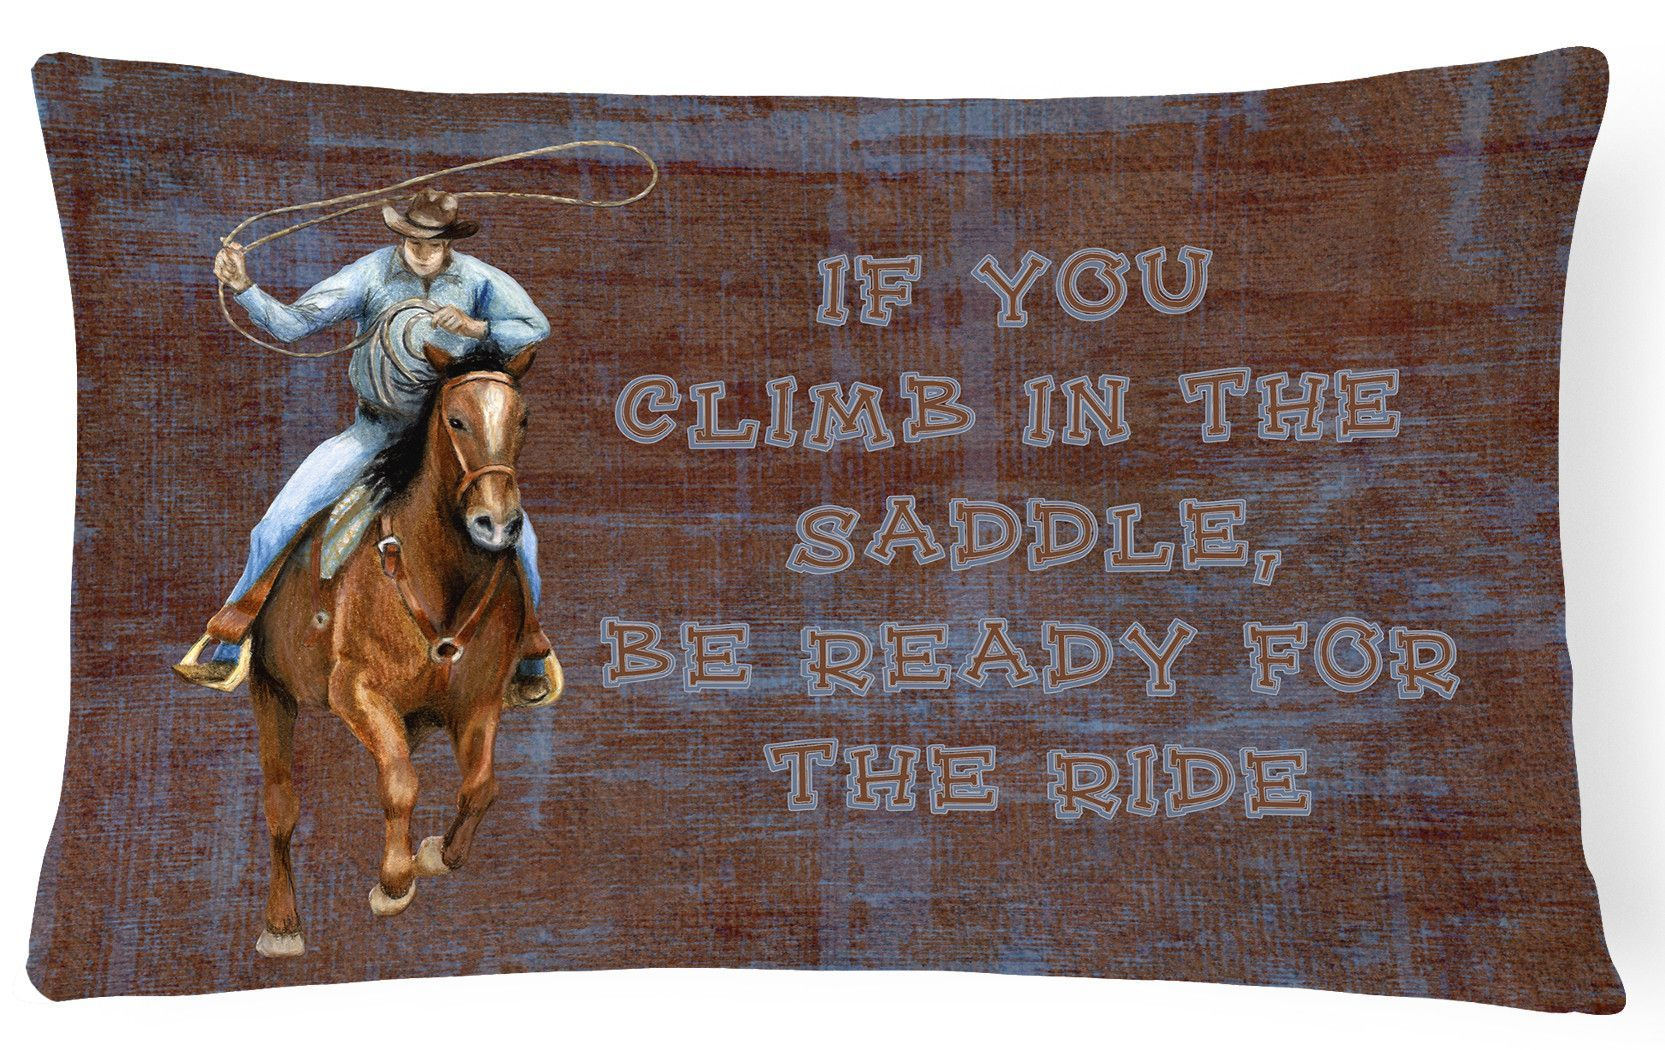 Roper Horse If you climb in the saddle, be ready for the ride Canvas Fabric Decorative Pillow SB3061PW1216